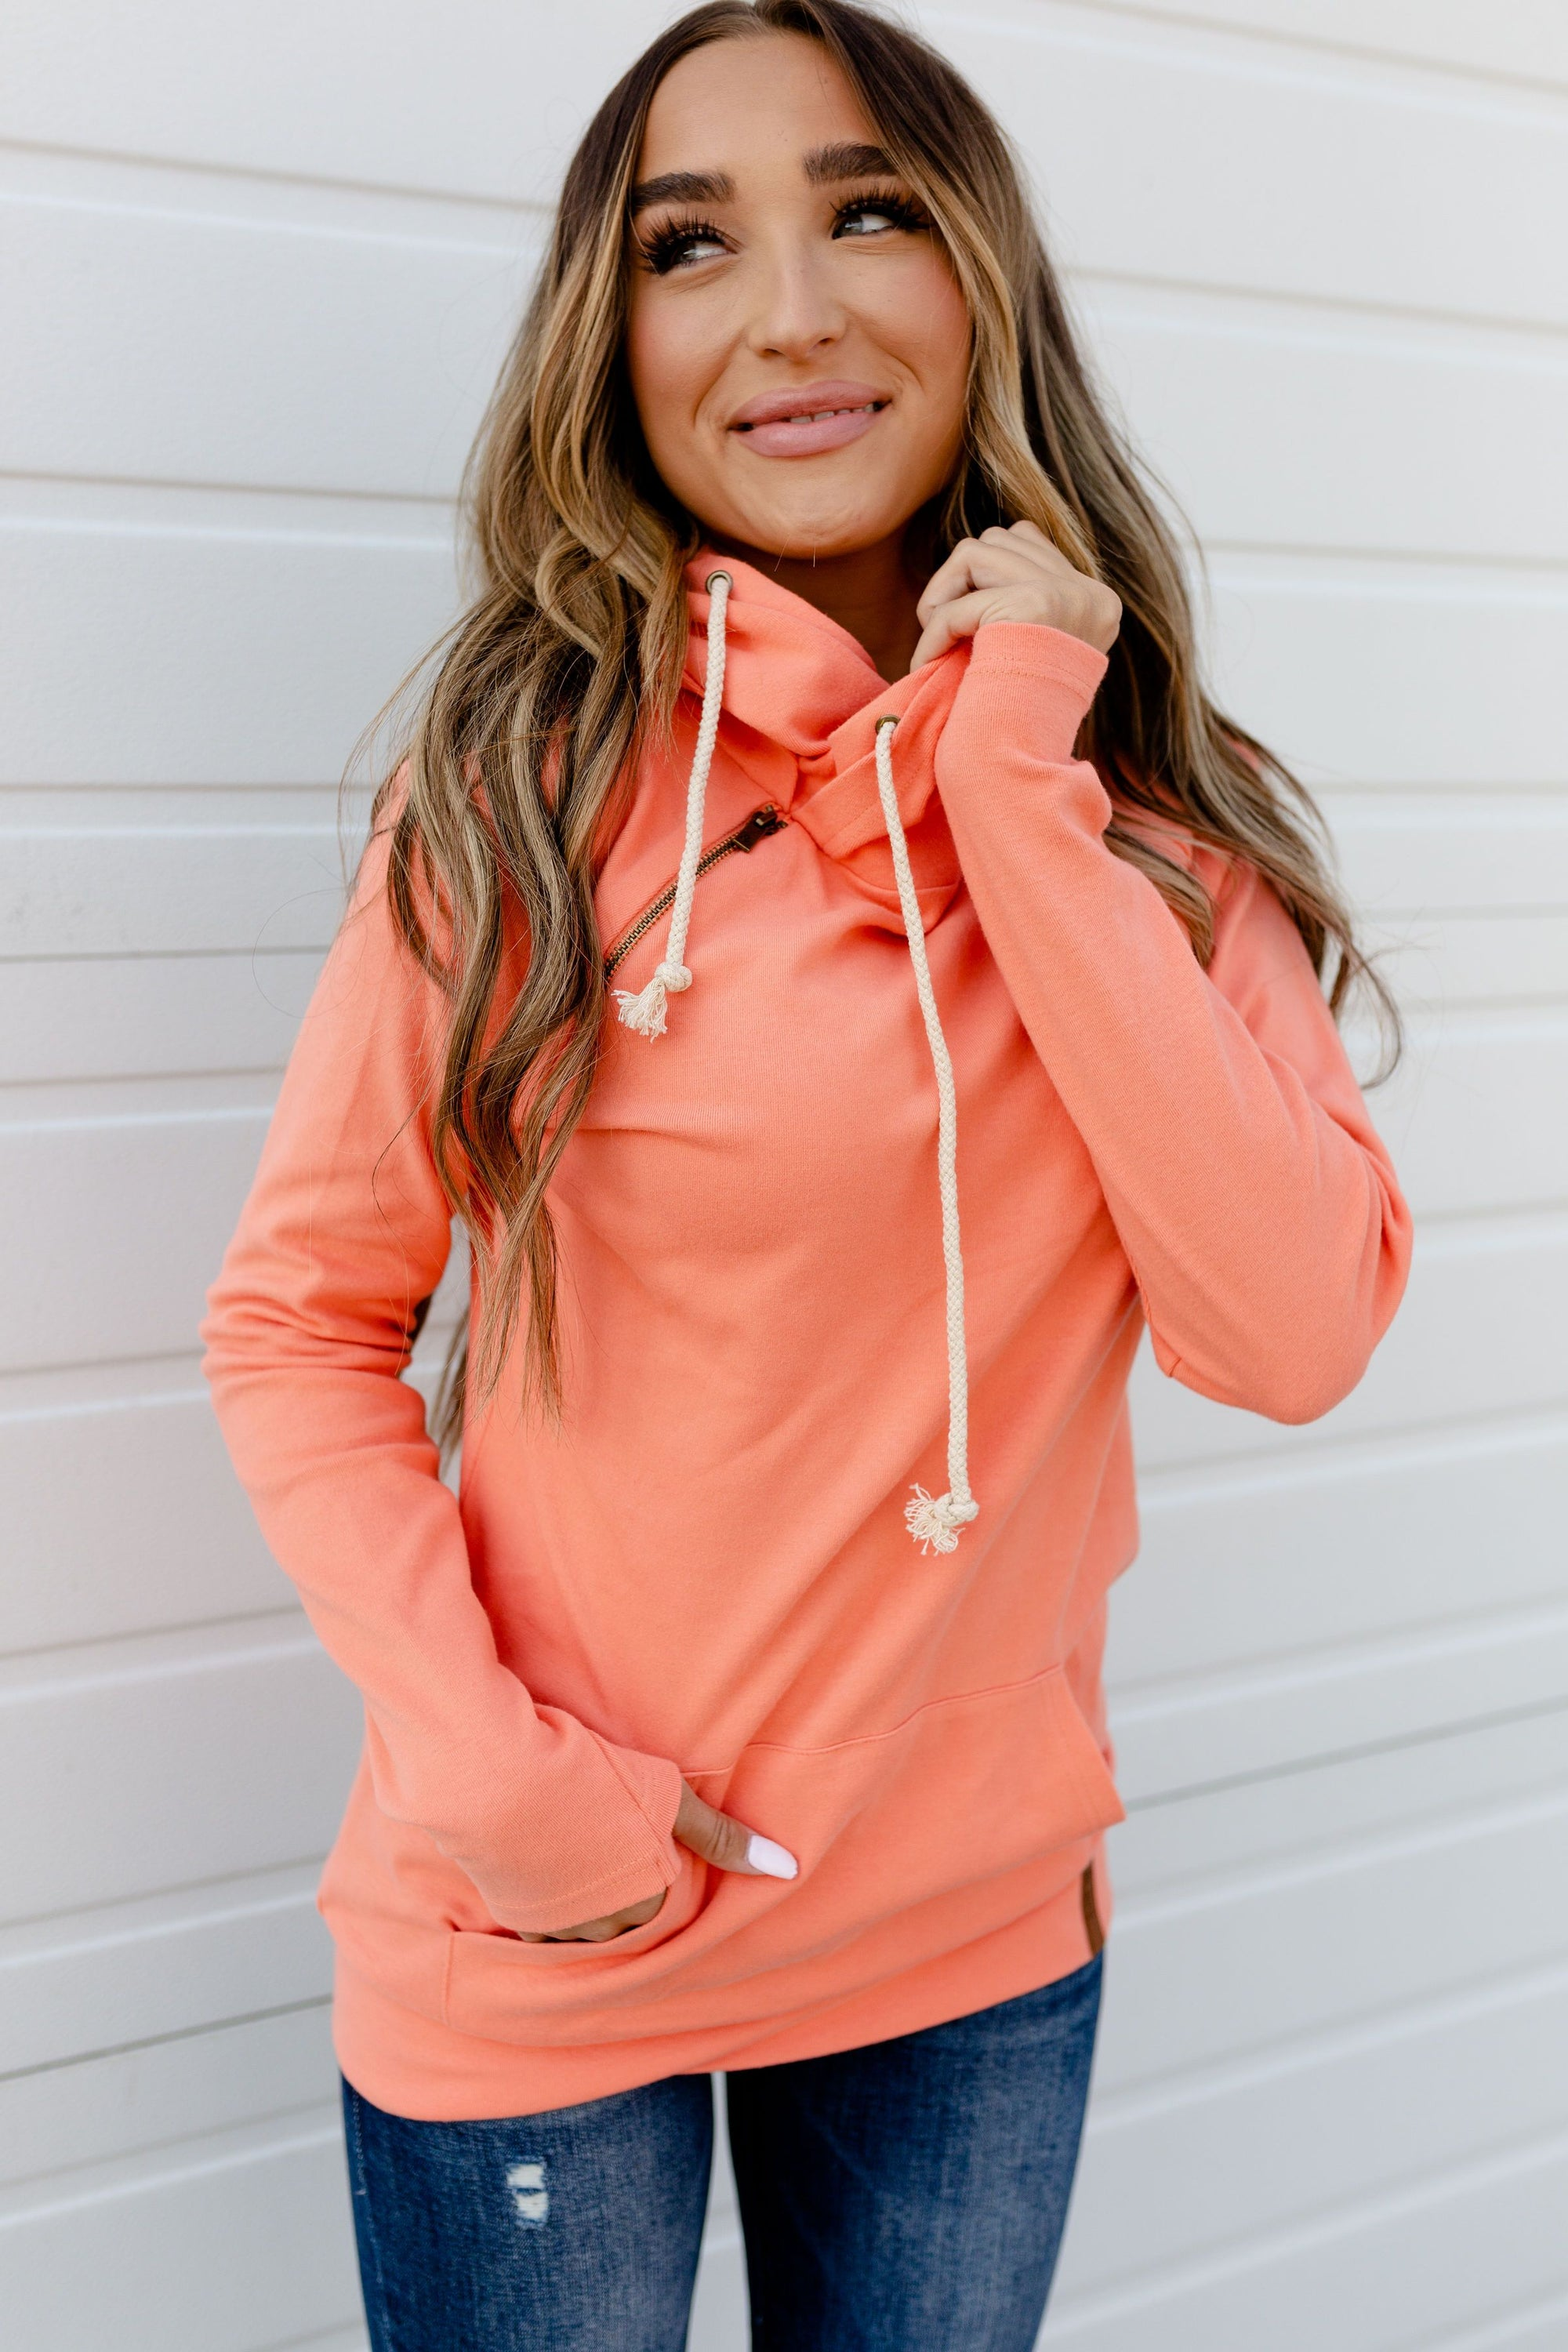 The Basic Doublehood Sweatshirt - Opal-[option4]-[option5]-[option6]-[option7]-[option8]-Womens-Clothing-Shop